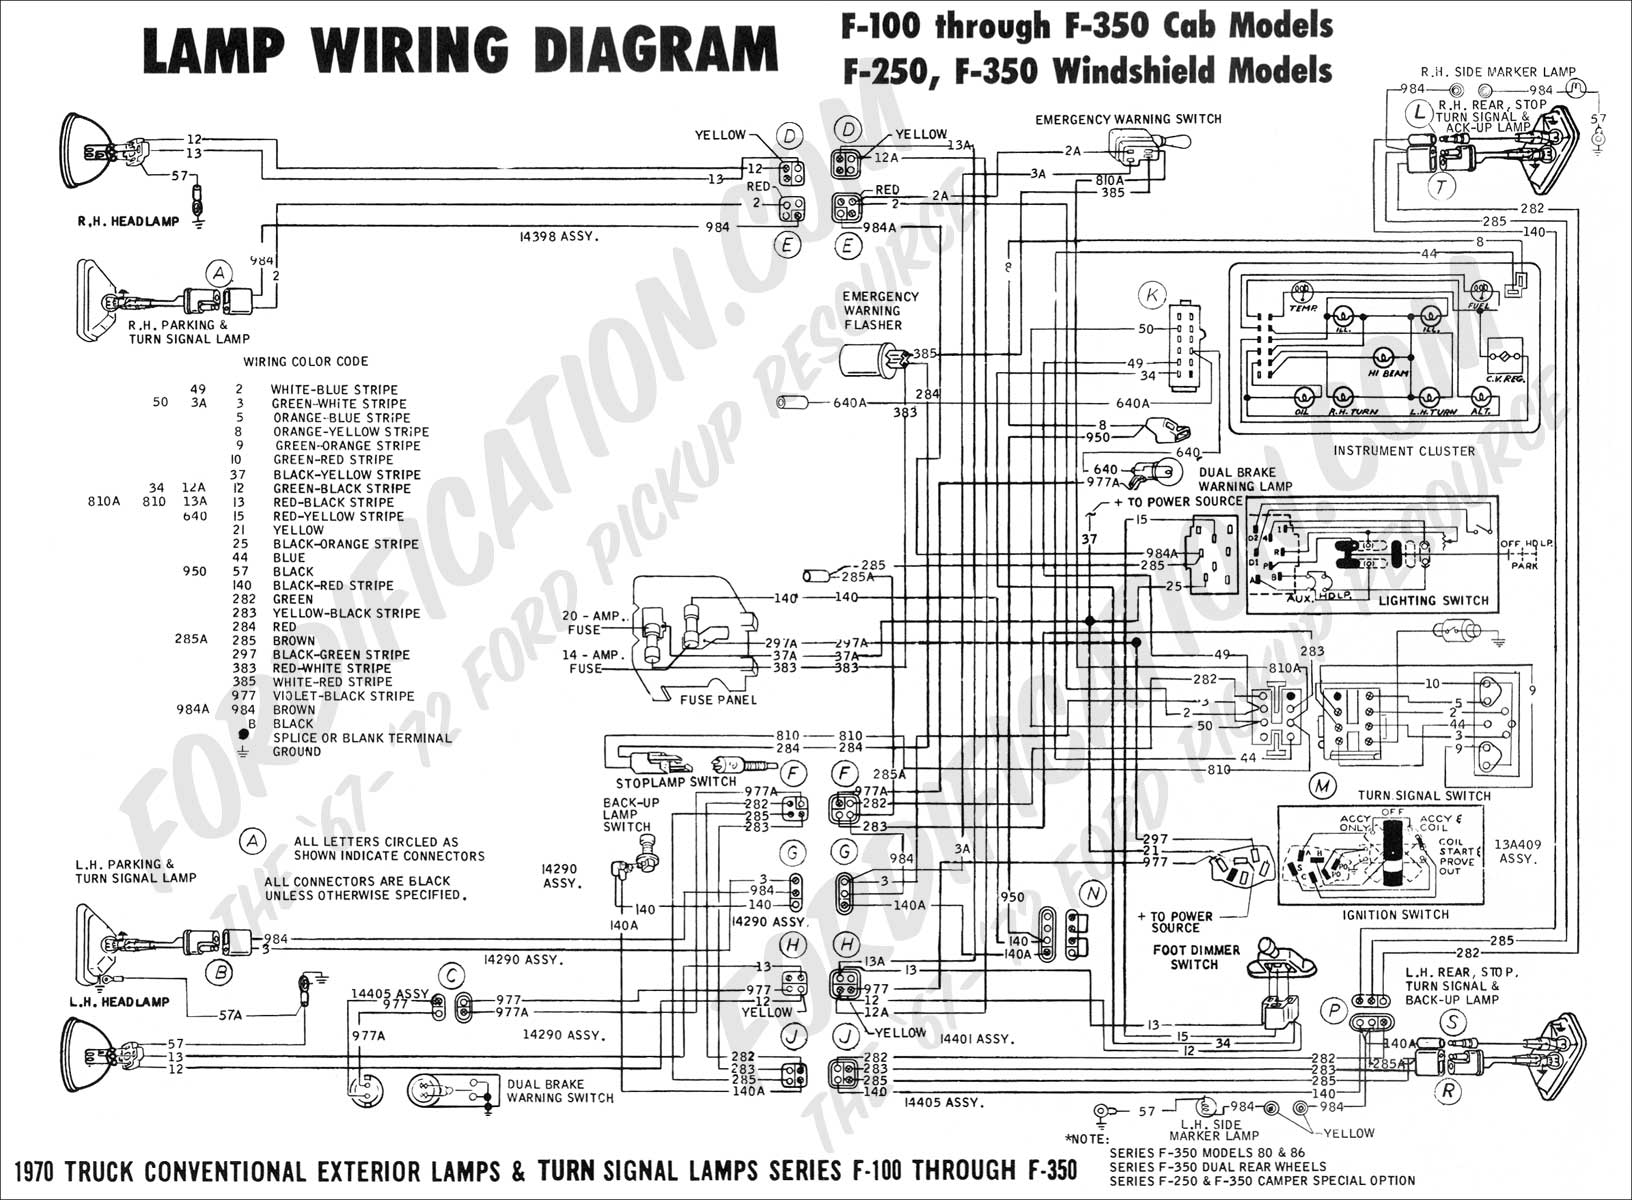 wiring diagram_70ext lights01 ford truck technical drawings and schematics section h wiring 2001 F150 Fuses and Relays Diagram at virtualis.co